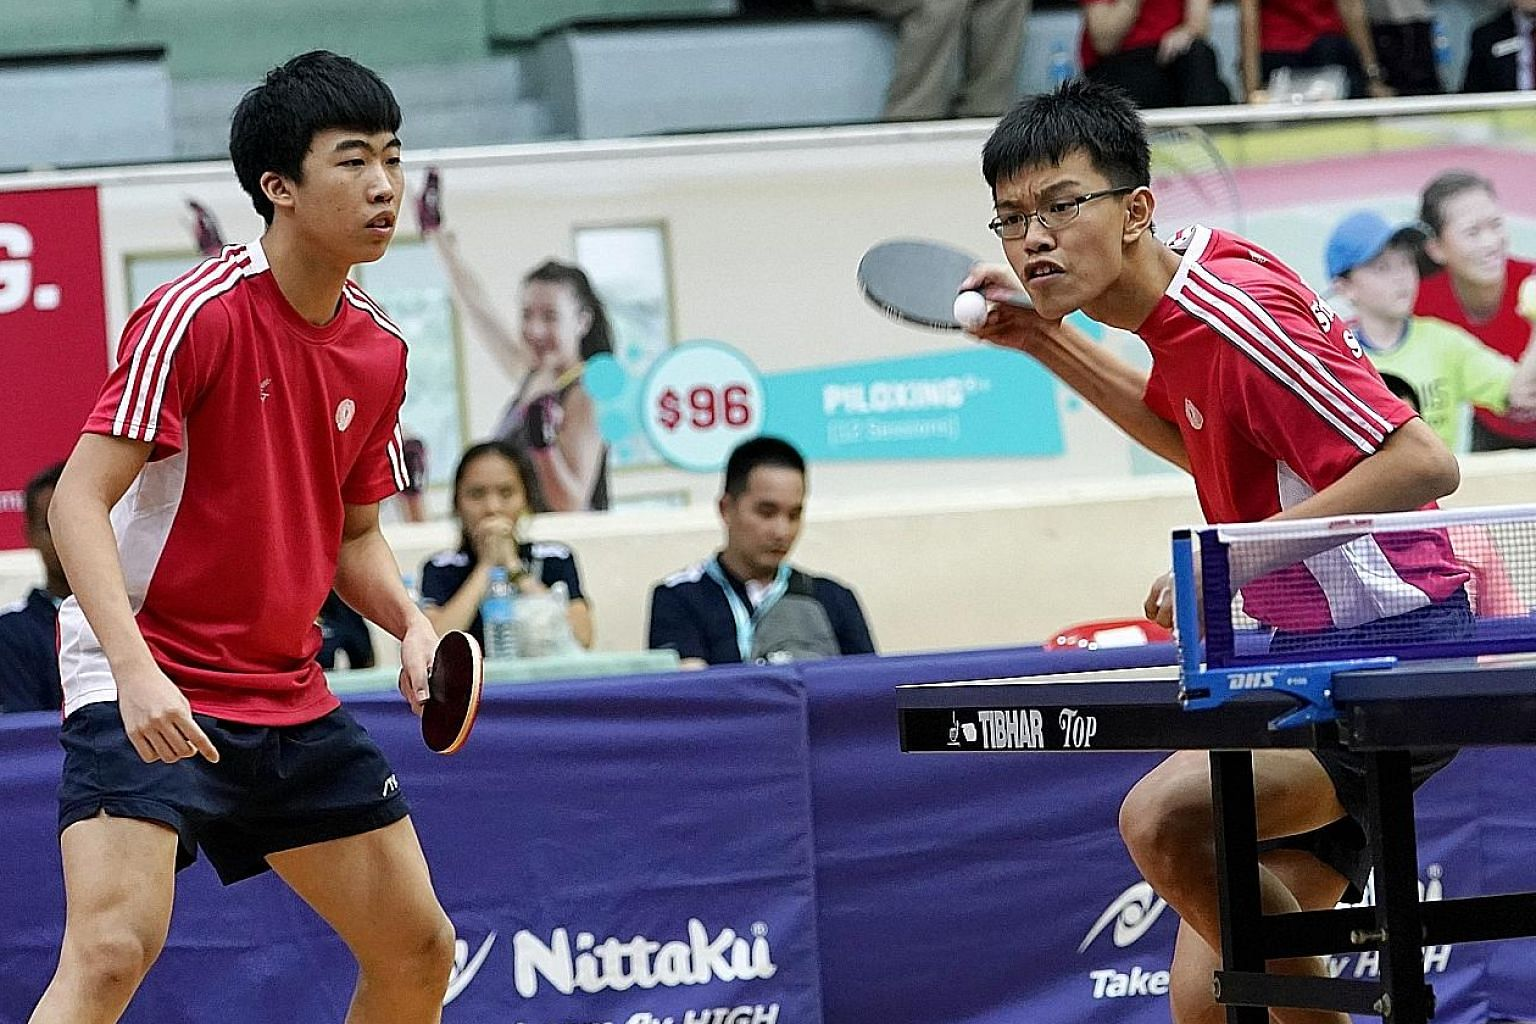 Singapore's Gerald Yu (left) and Josh Chua in the boys' doubles final against Vietnam's Le Dinh Duc and Nguyen Anh Duc at the Toa Payoh Sports Hall. They won 11-3, 11-8, 11-6.